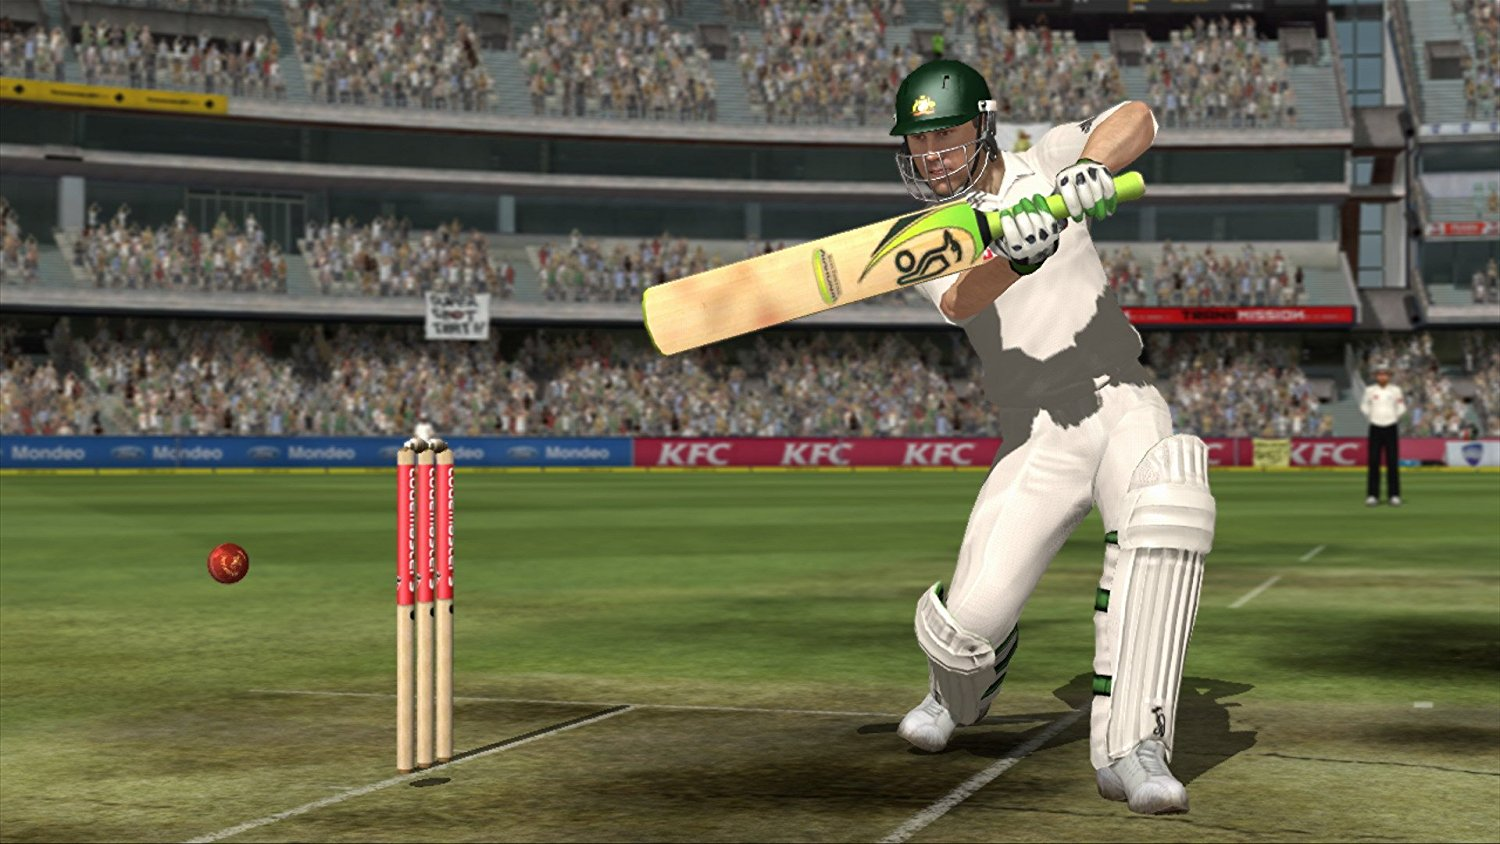 Top 15 Best Cricket Games for Android in 2019